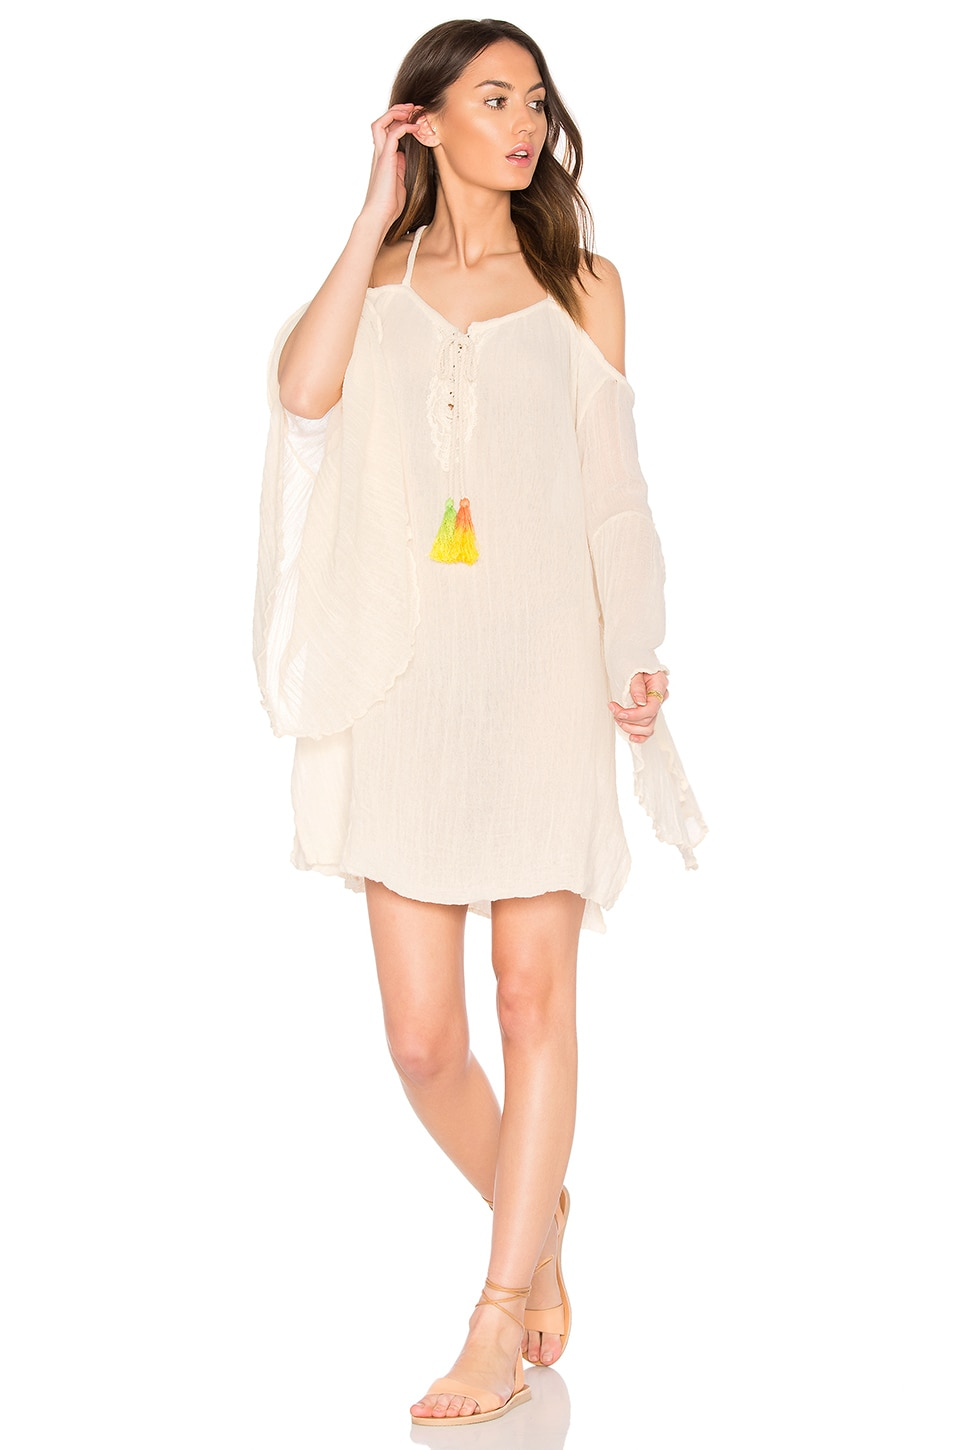 Jen's Pirate Booty Tassel Wildlife Drop Back Mini Dress in Natural & Green Yellow Tassels